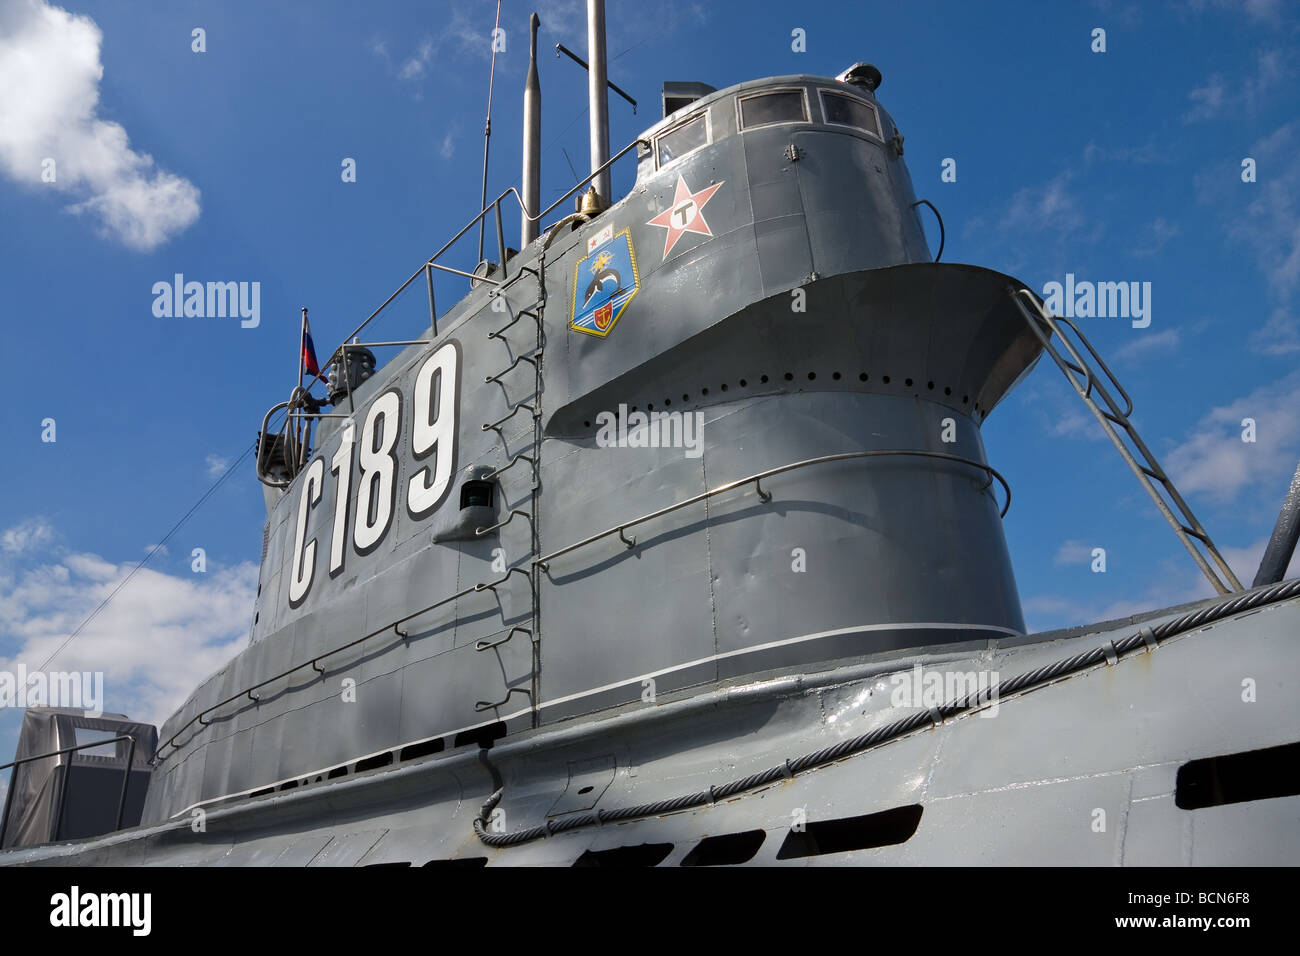 Russian diesel submarine C-189 NATO classification name Whiskey 215  nowadays museum St.Petersburg, Russia